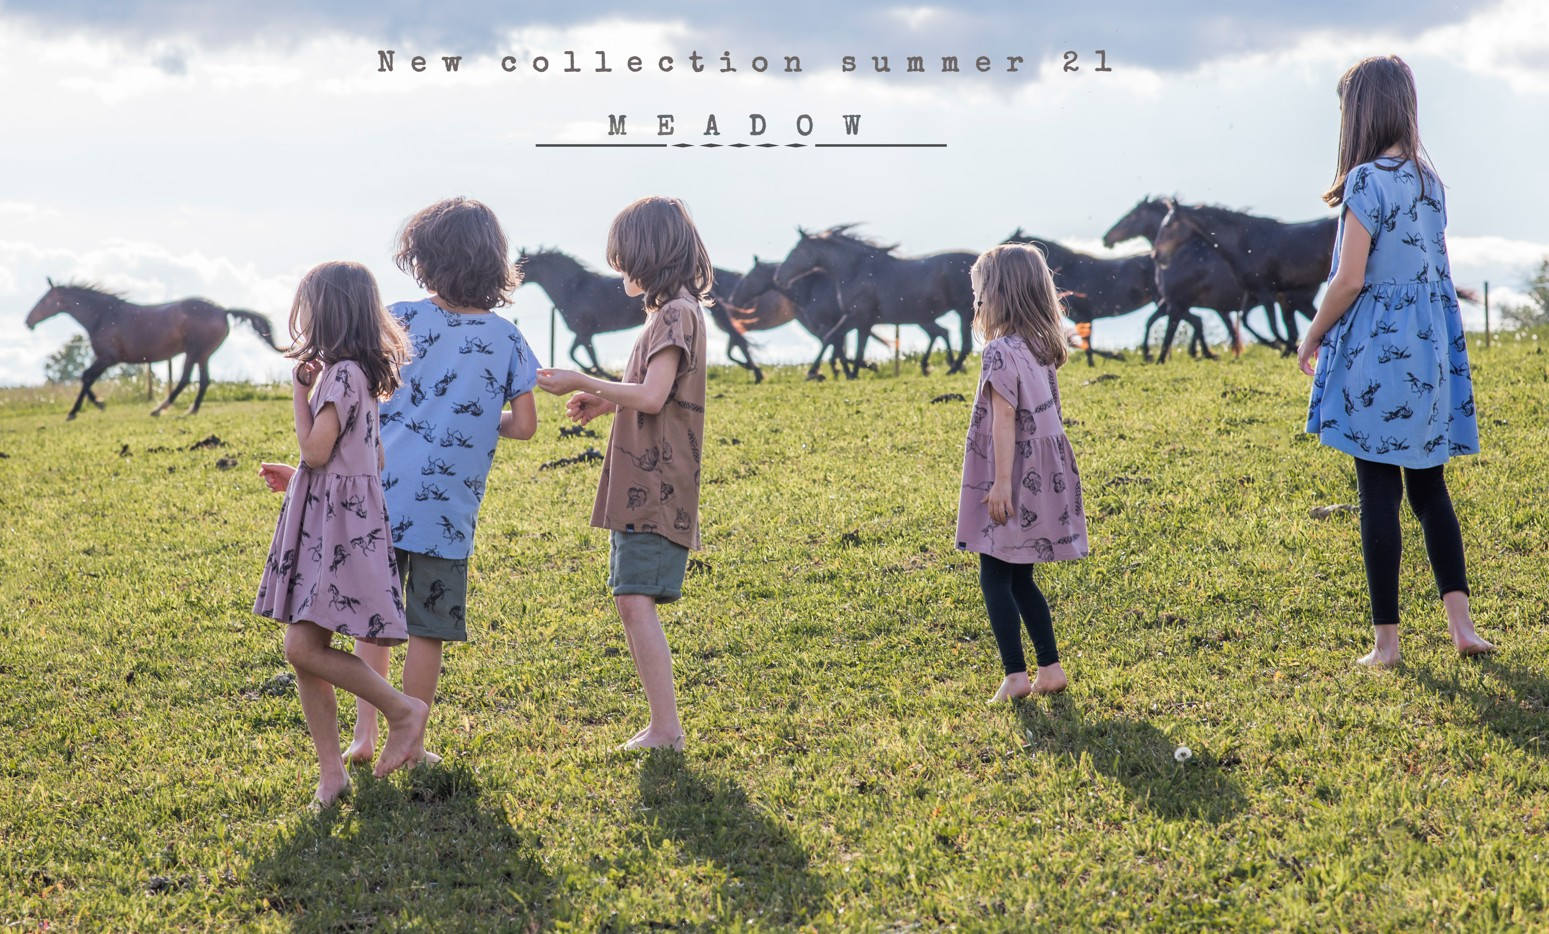 Meadow - collection summer 21